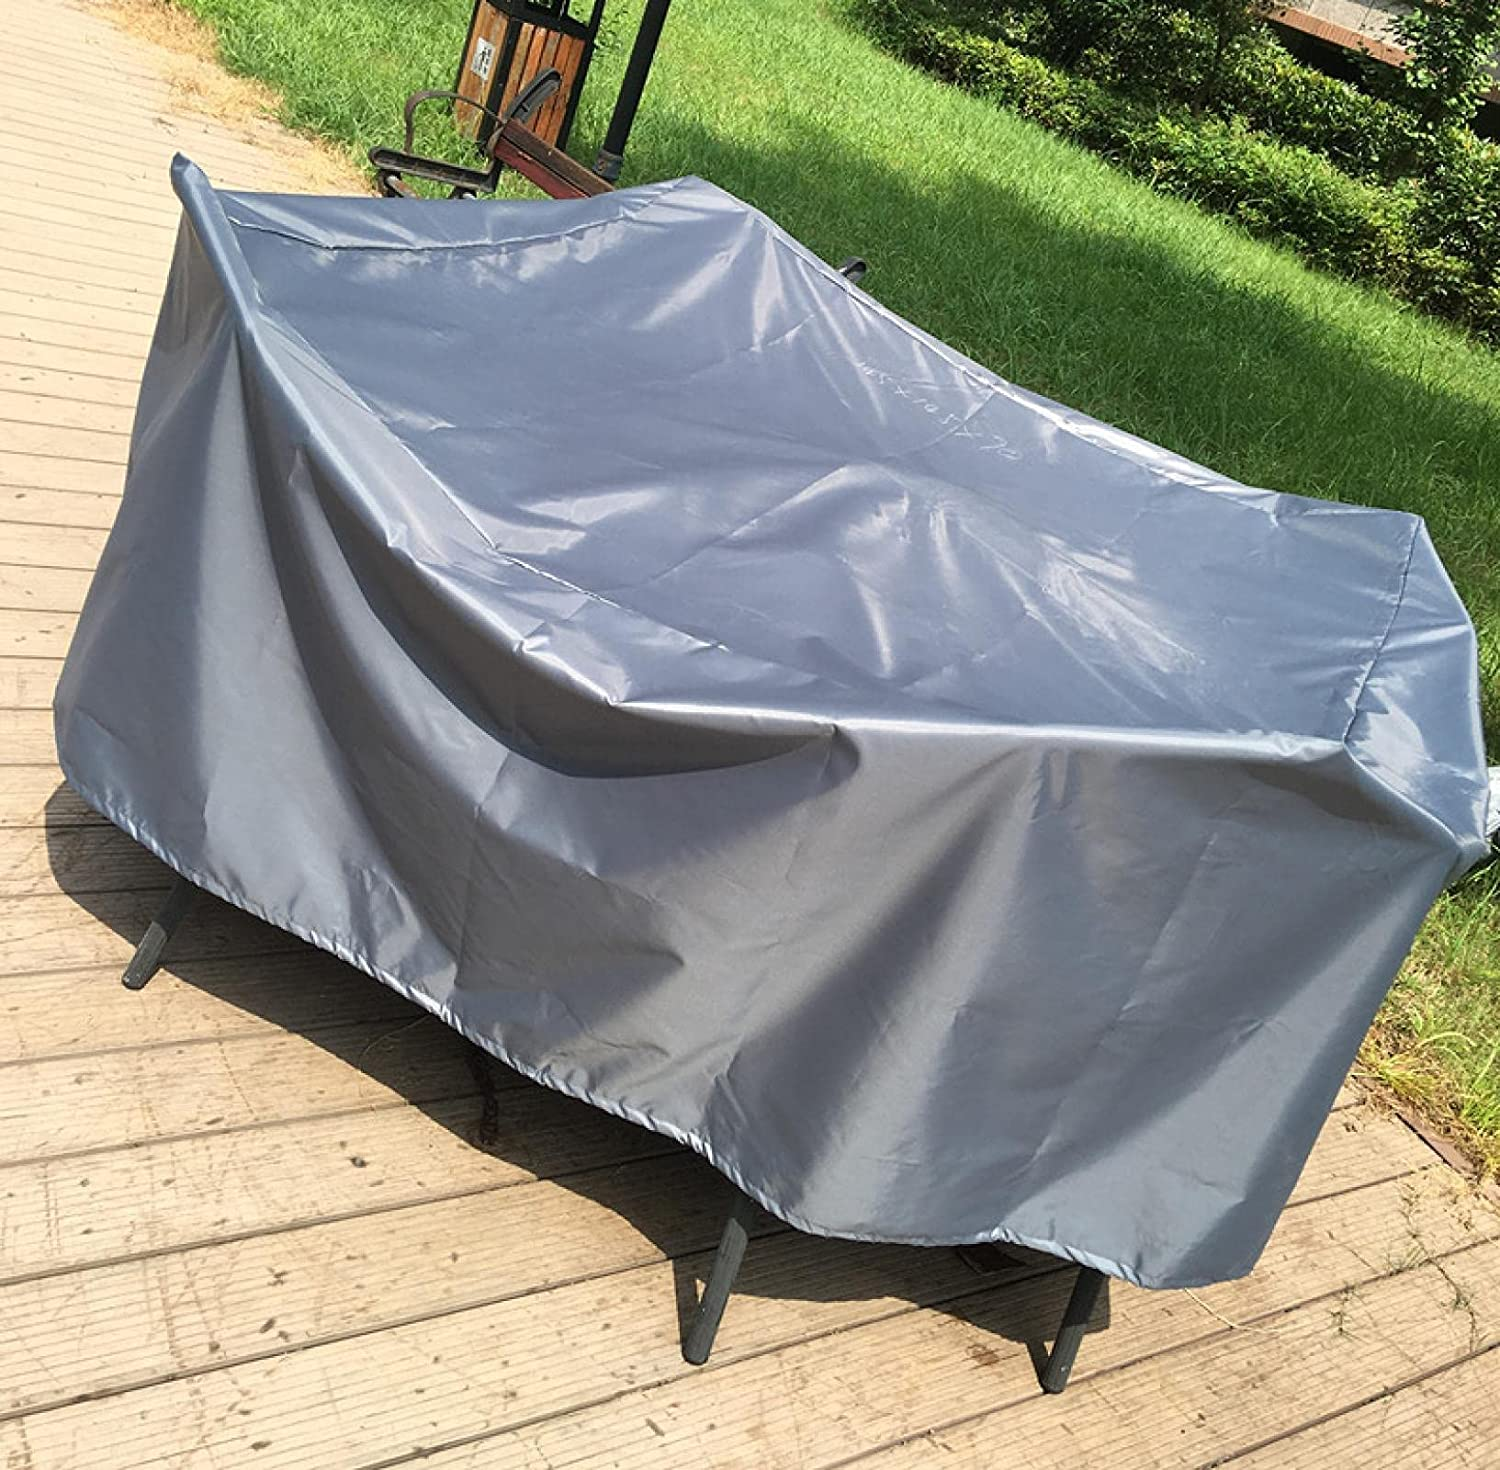 Patio Mesa Mall Furniture Cover Durable Fabric Outdoor Max 49% OFF Waterproof Oxford